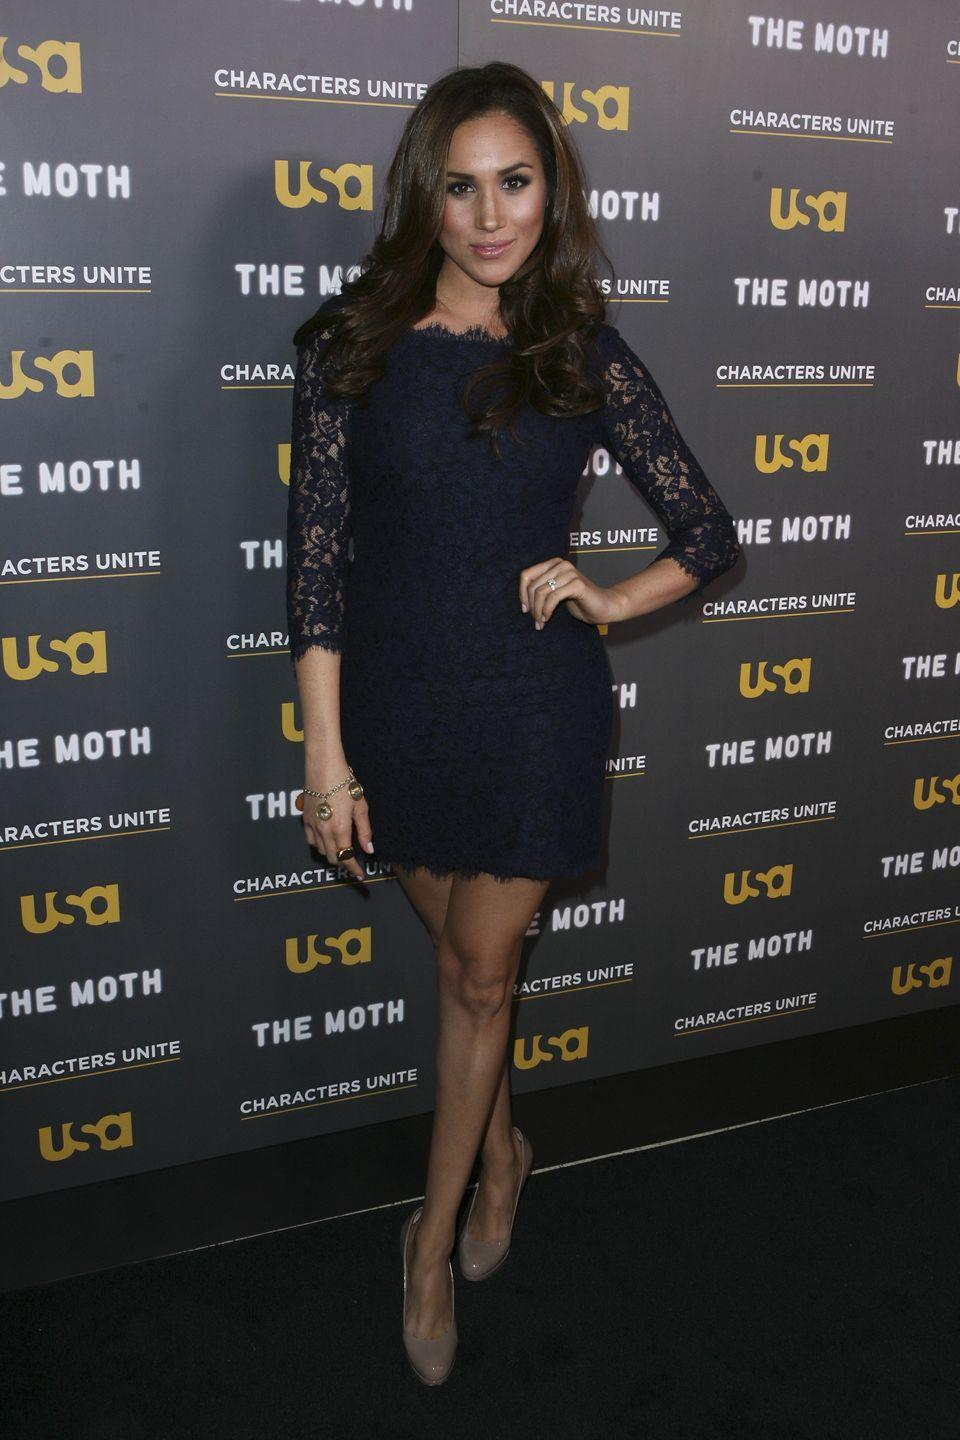 <p>The then-actress donned a classic black lace DvF minidress to an event in L.A.</p>